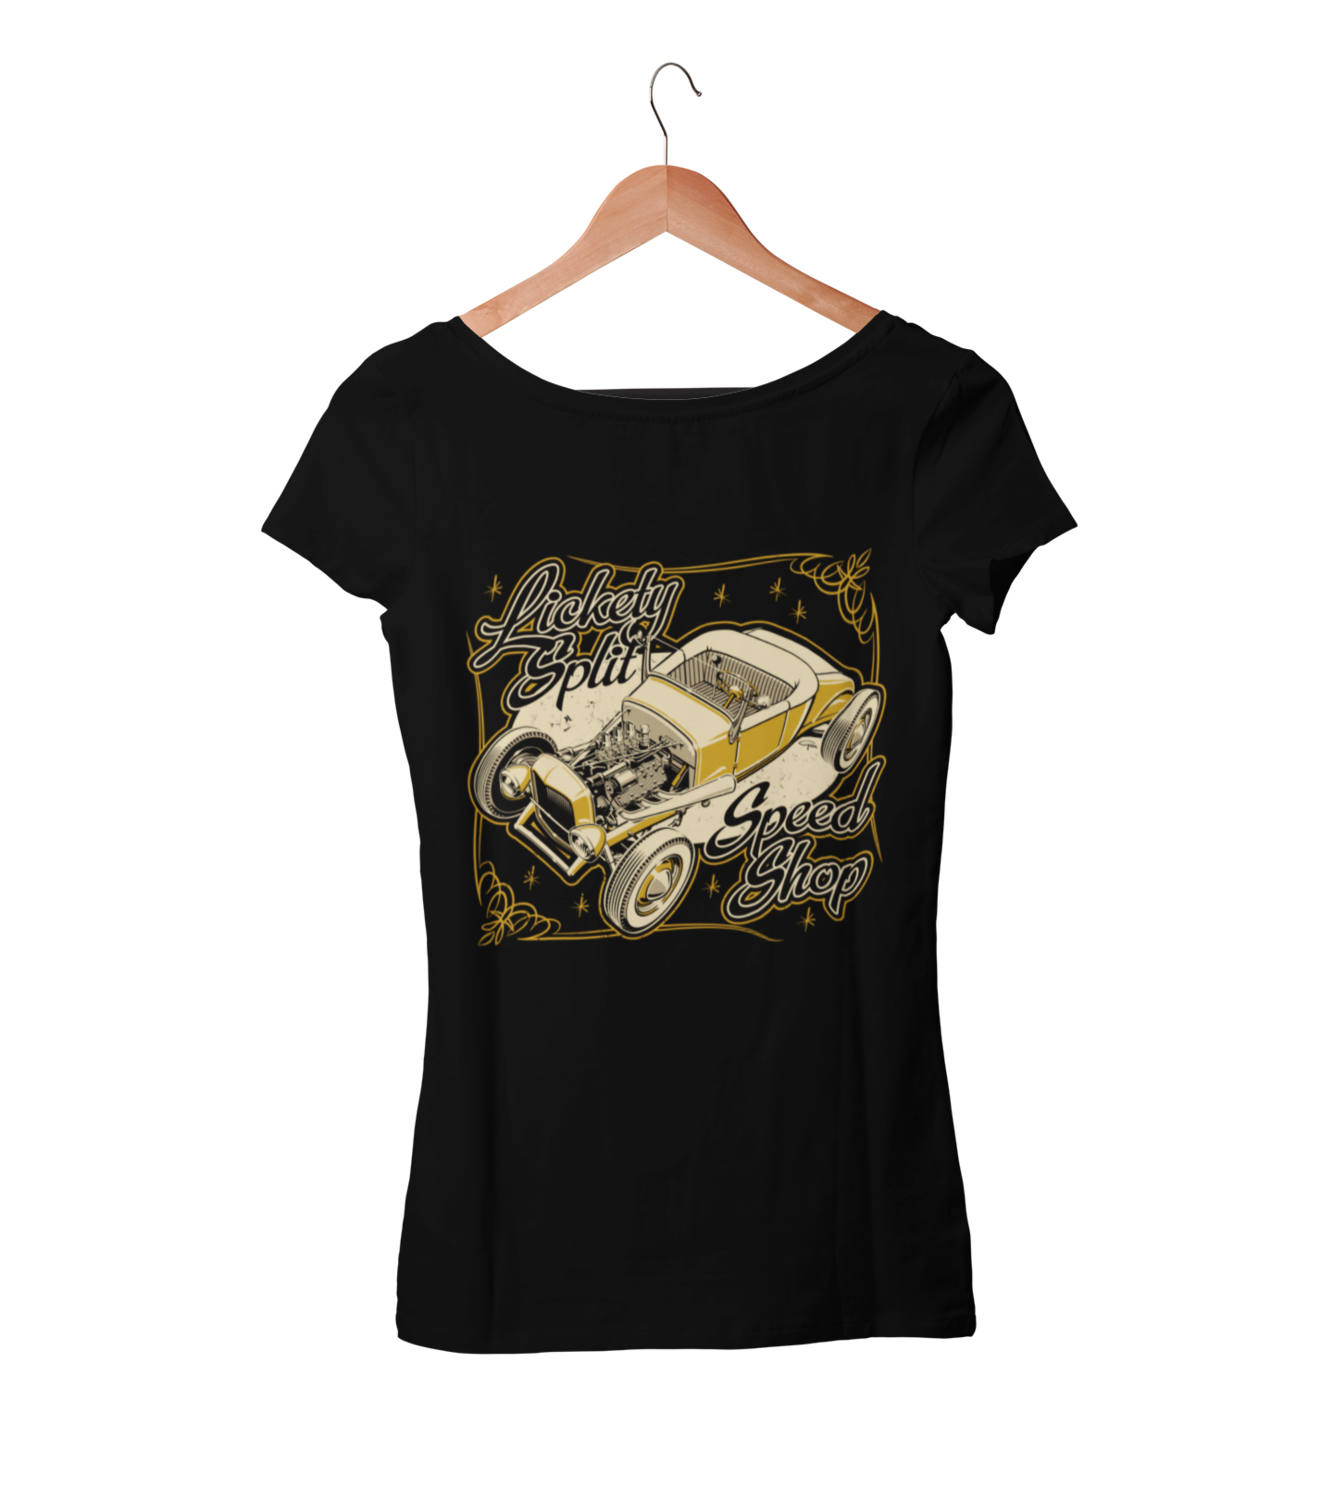 "LICKETY SPLIT SPEEDSHOP T-SHIRT WOMAN by Ger ""Dutch Courage"" Peters artwork"